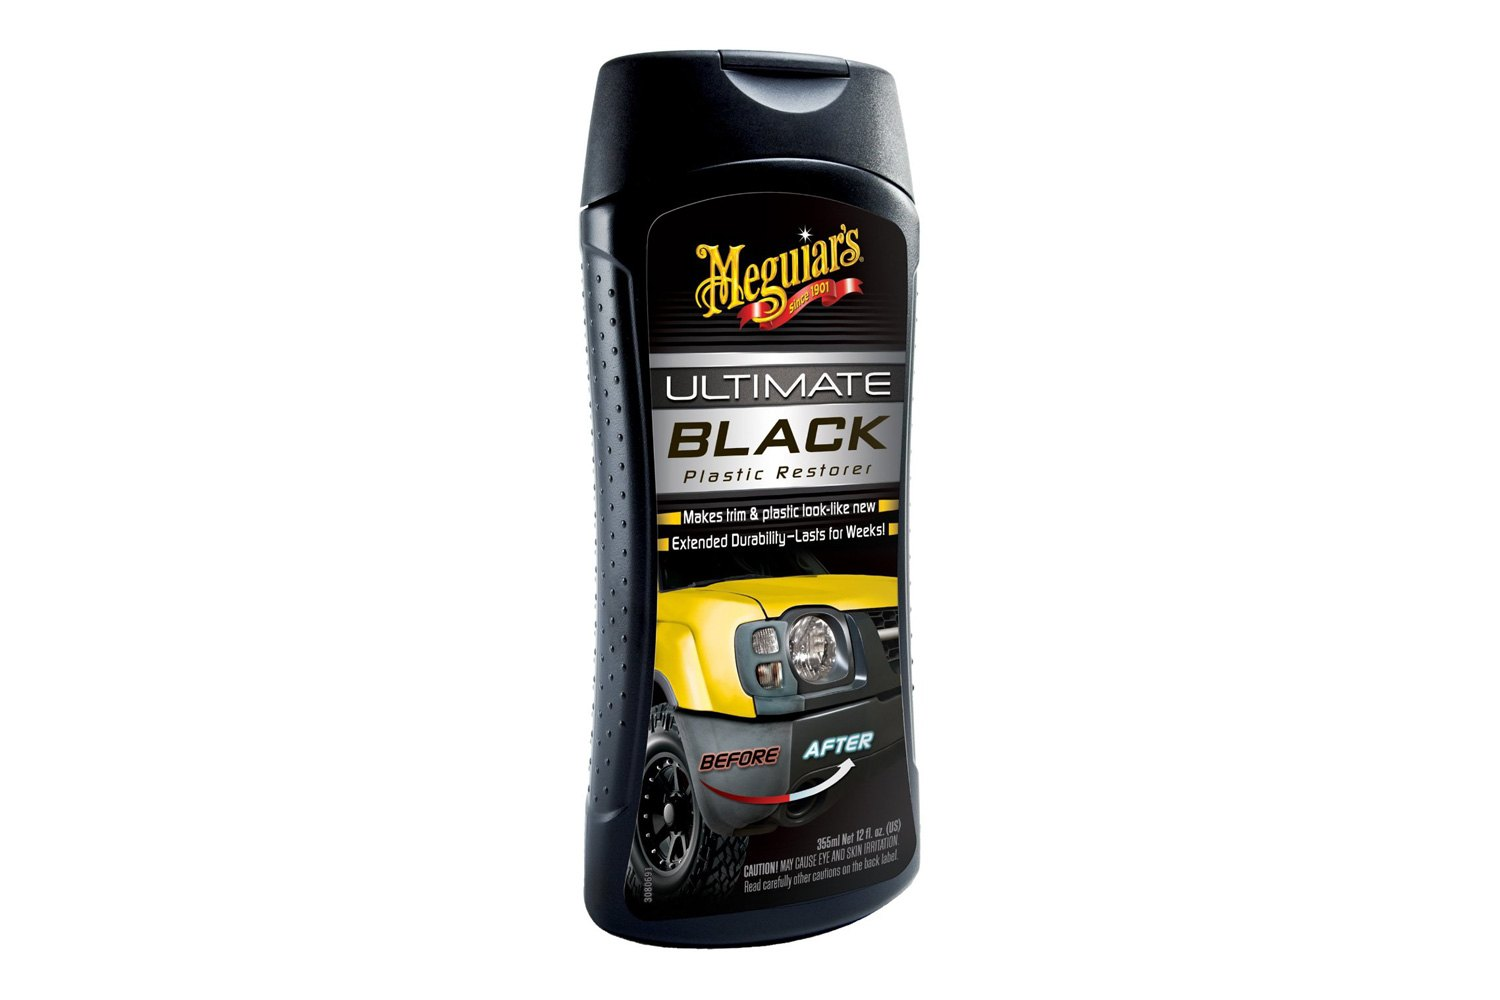 Meguiars g15812 ultimate black plastic restorer Black interior car trim restorer